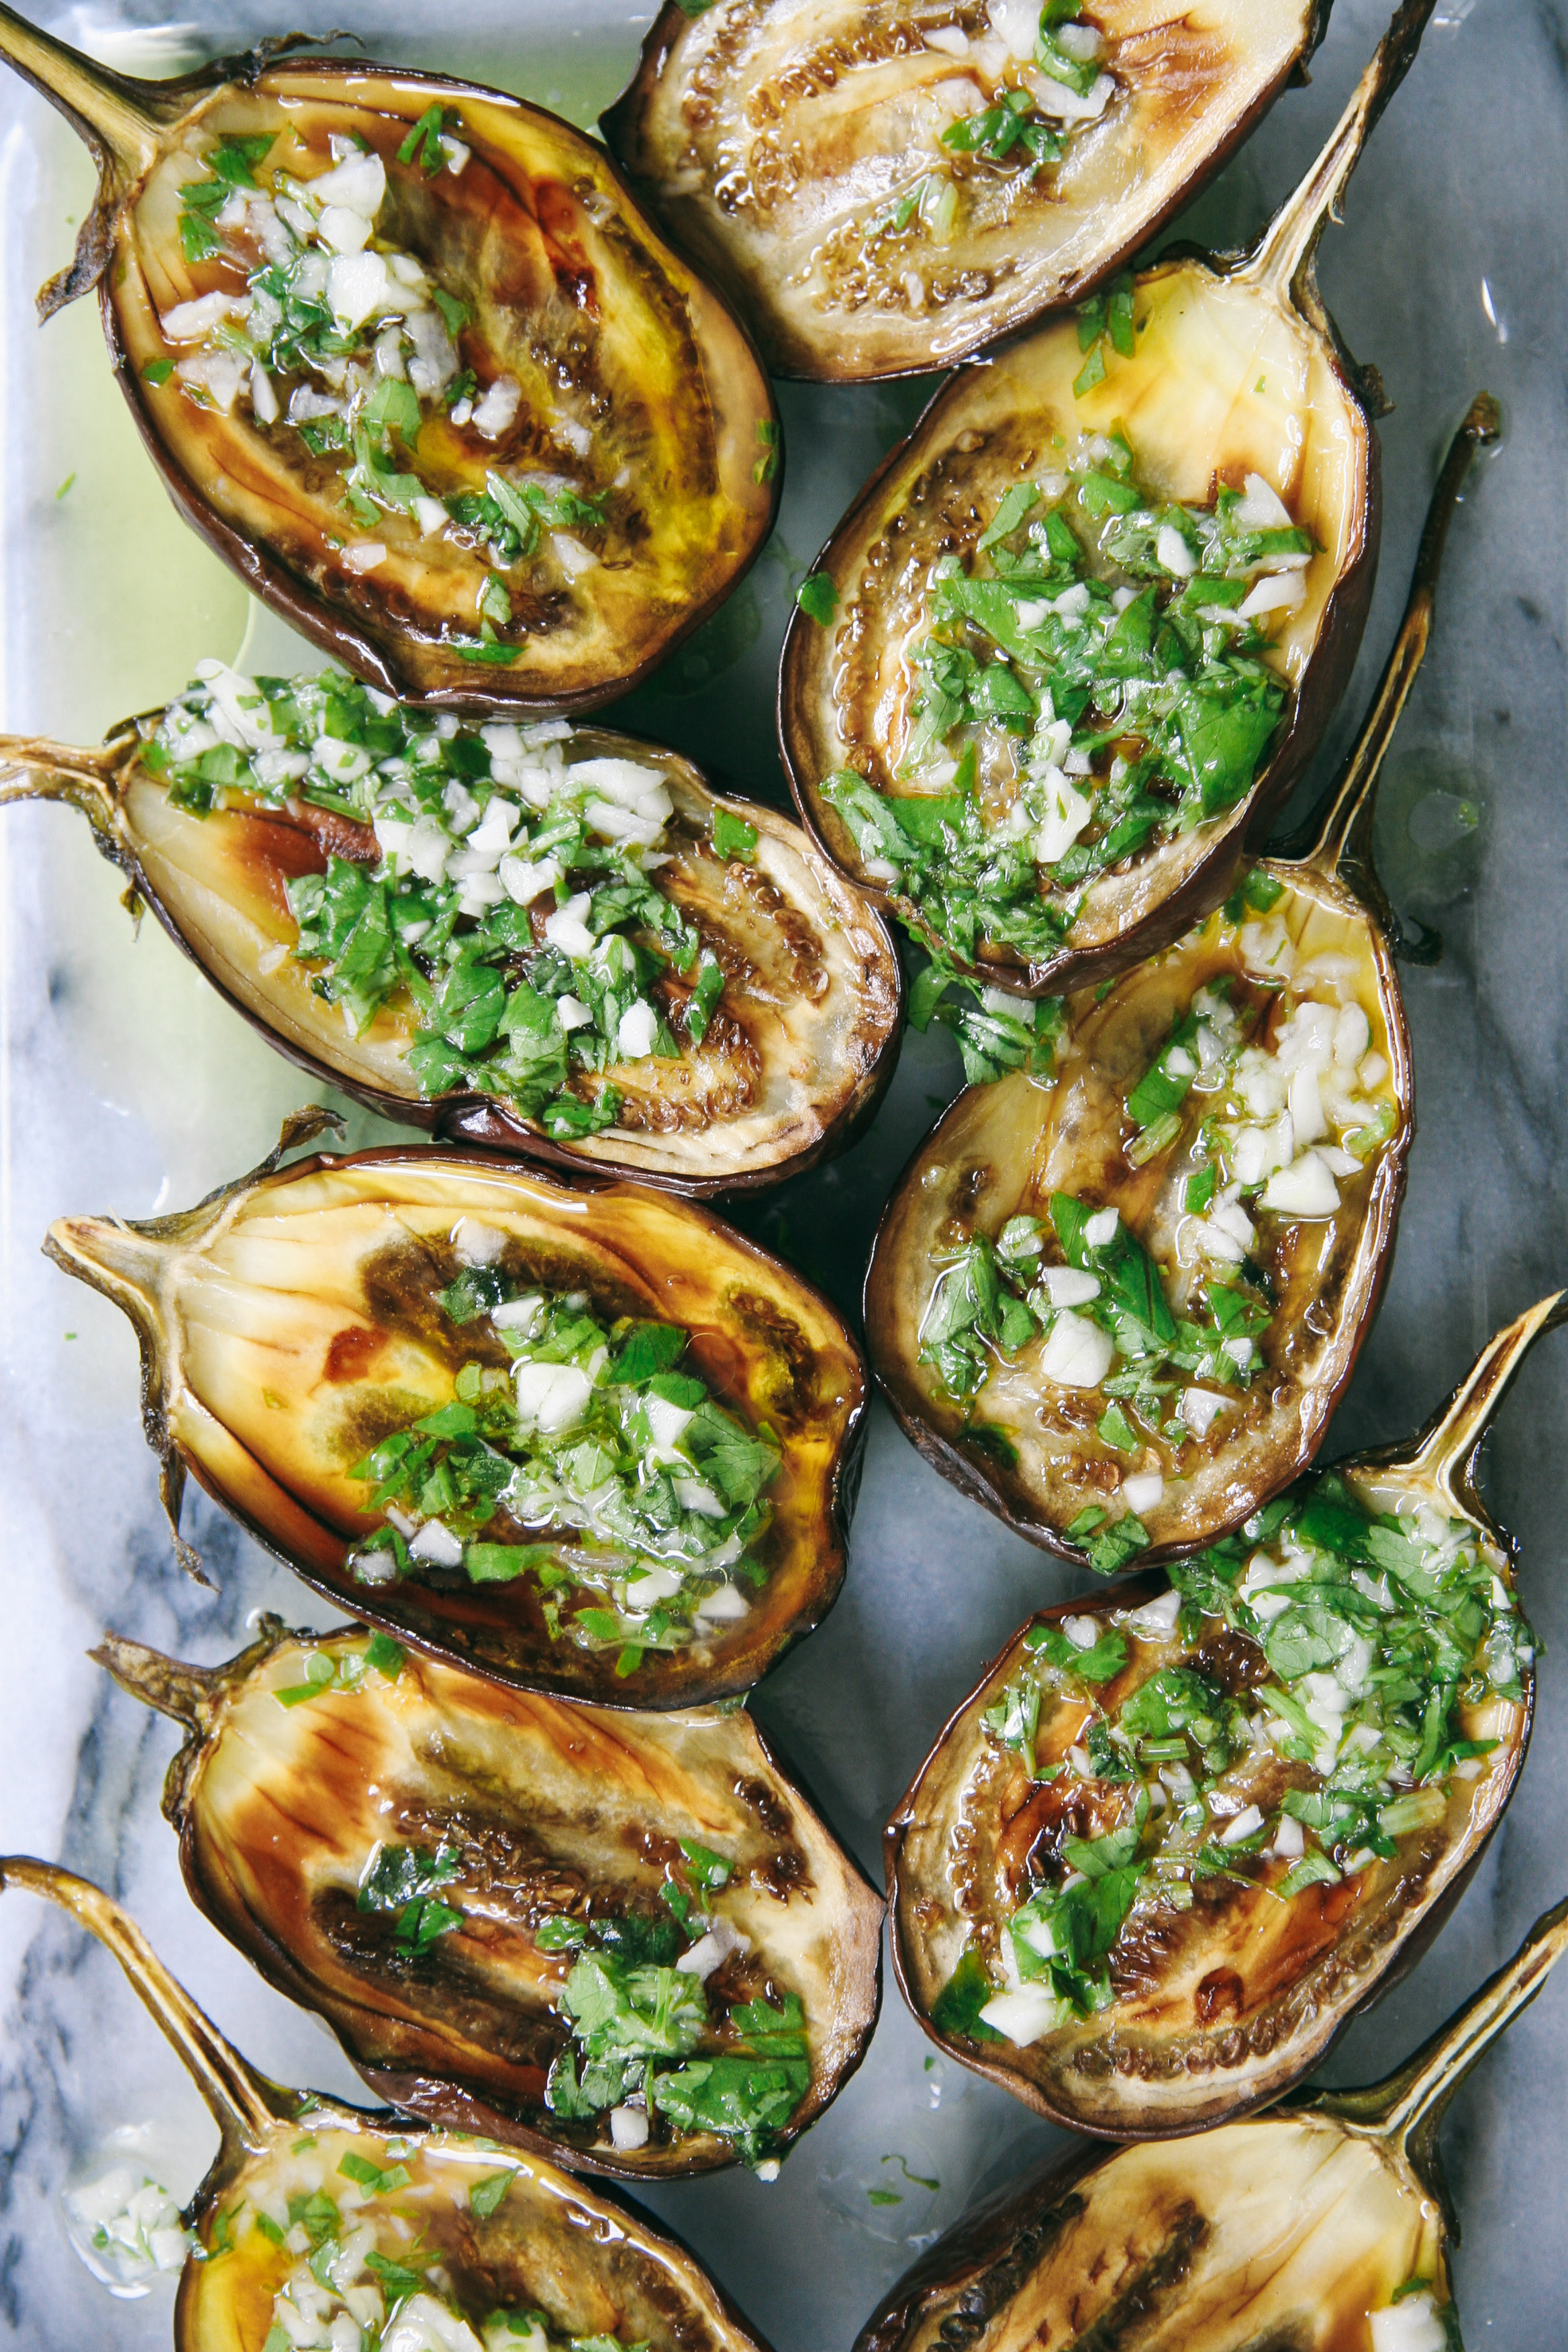 Lemon Garlic Roasted Eggplants over Labane | Mezes | I Will Not Eat Oysters